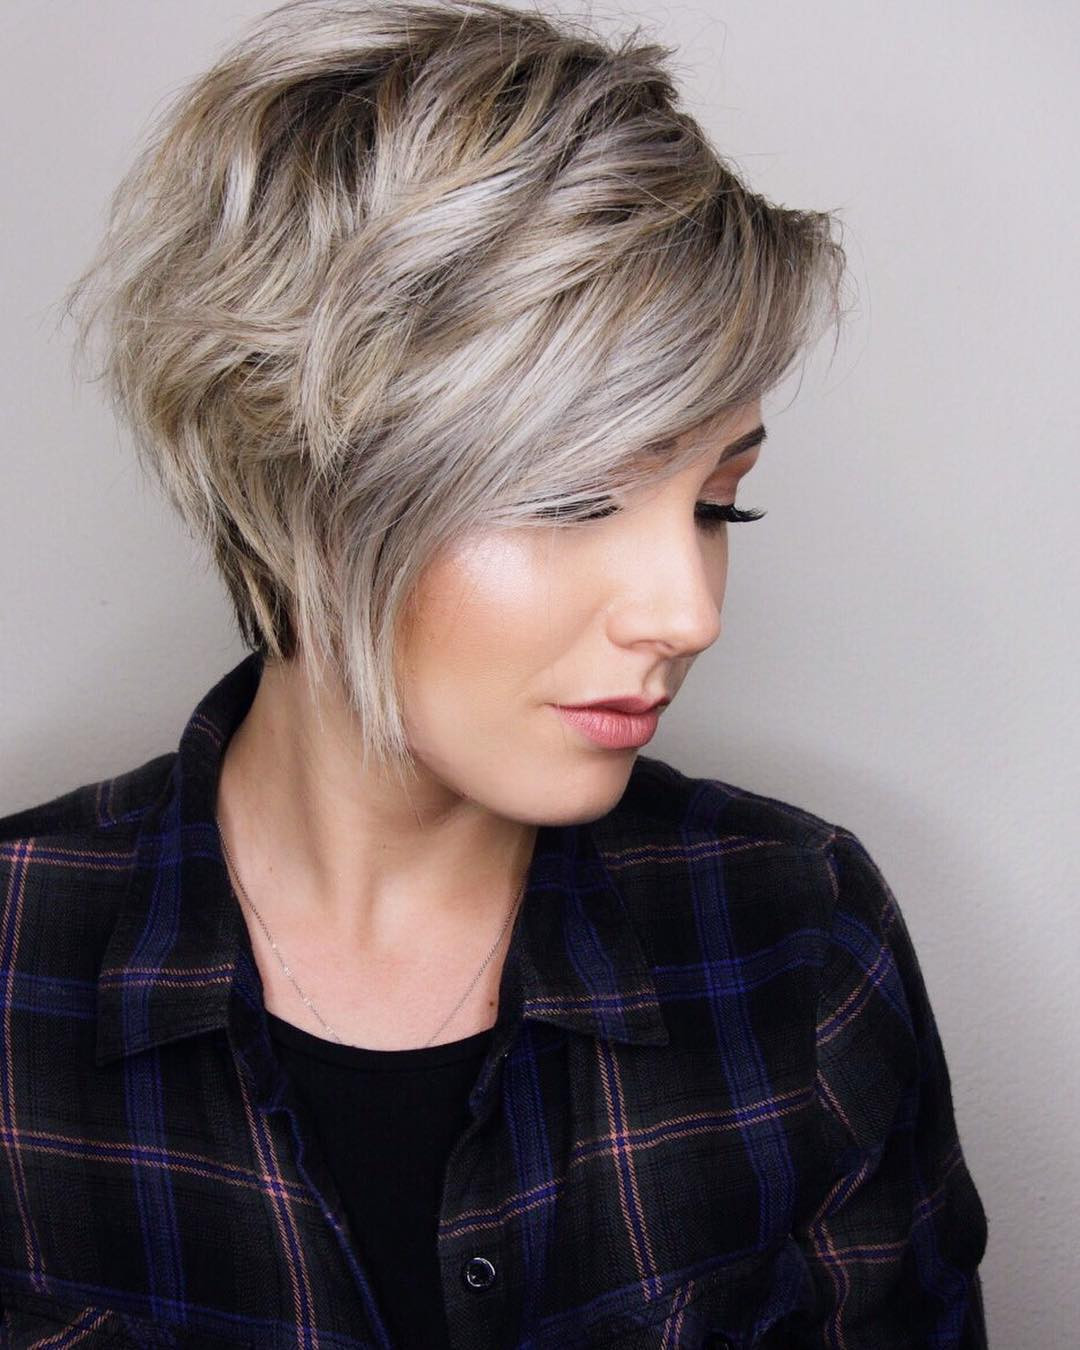 Best ideas about Women Short Layered Haircuts . Save or Pin 10 Trendy Layered Short Haircut Ideas 2019 Extra Now.